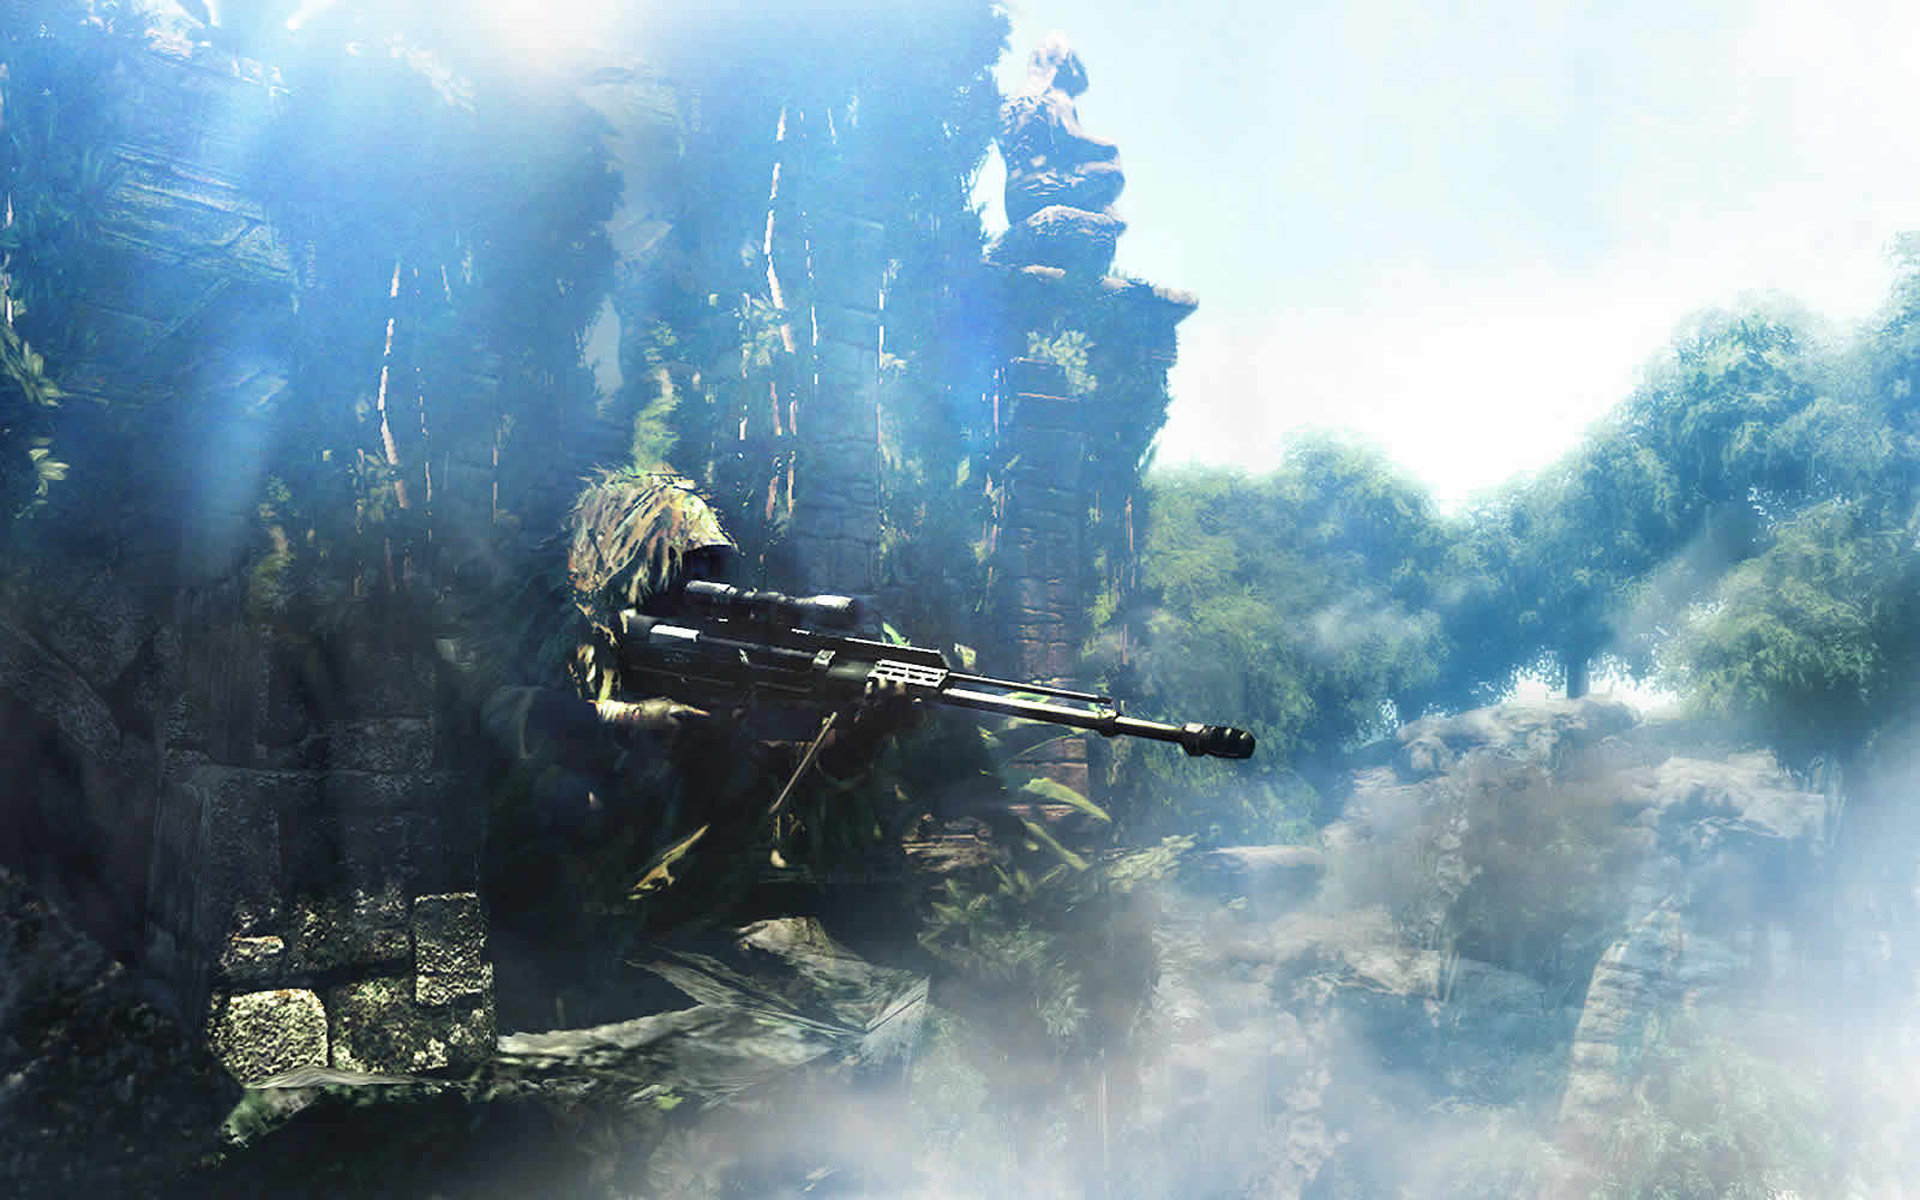 Best Sniper Ghost Warrior 2 Wallpaper Id119386 For High